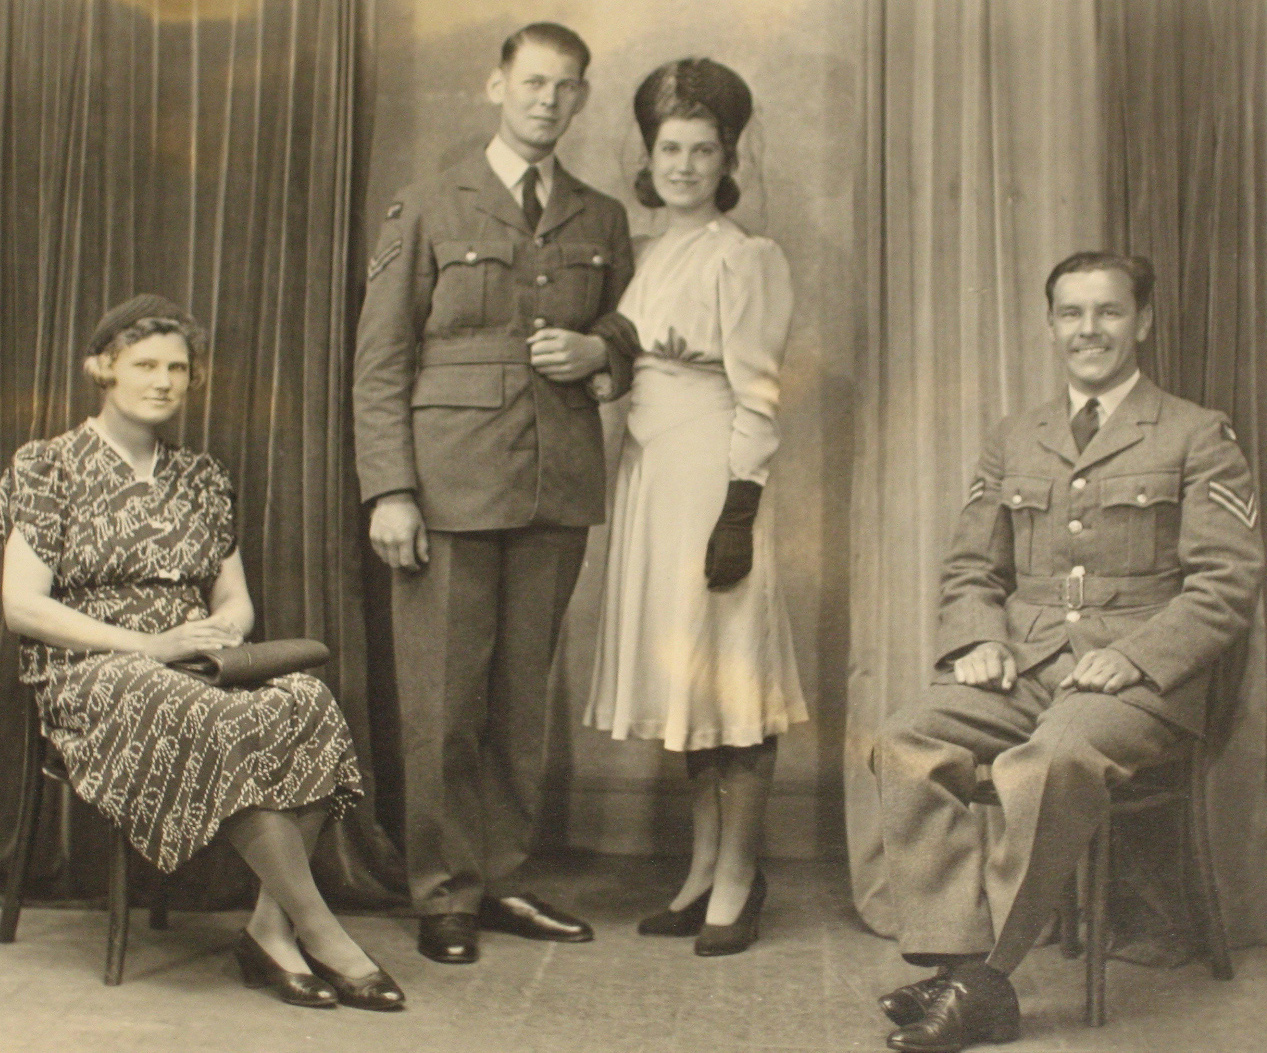 Diana & David's wedding 1940